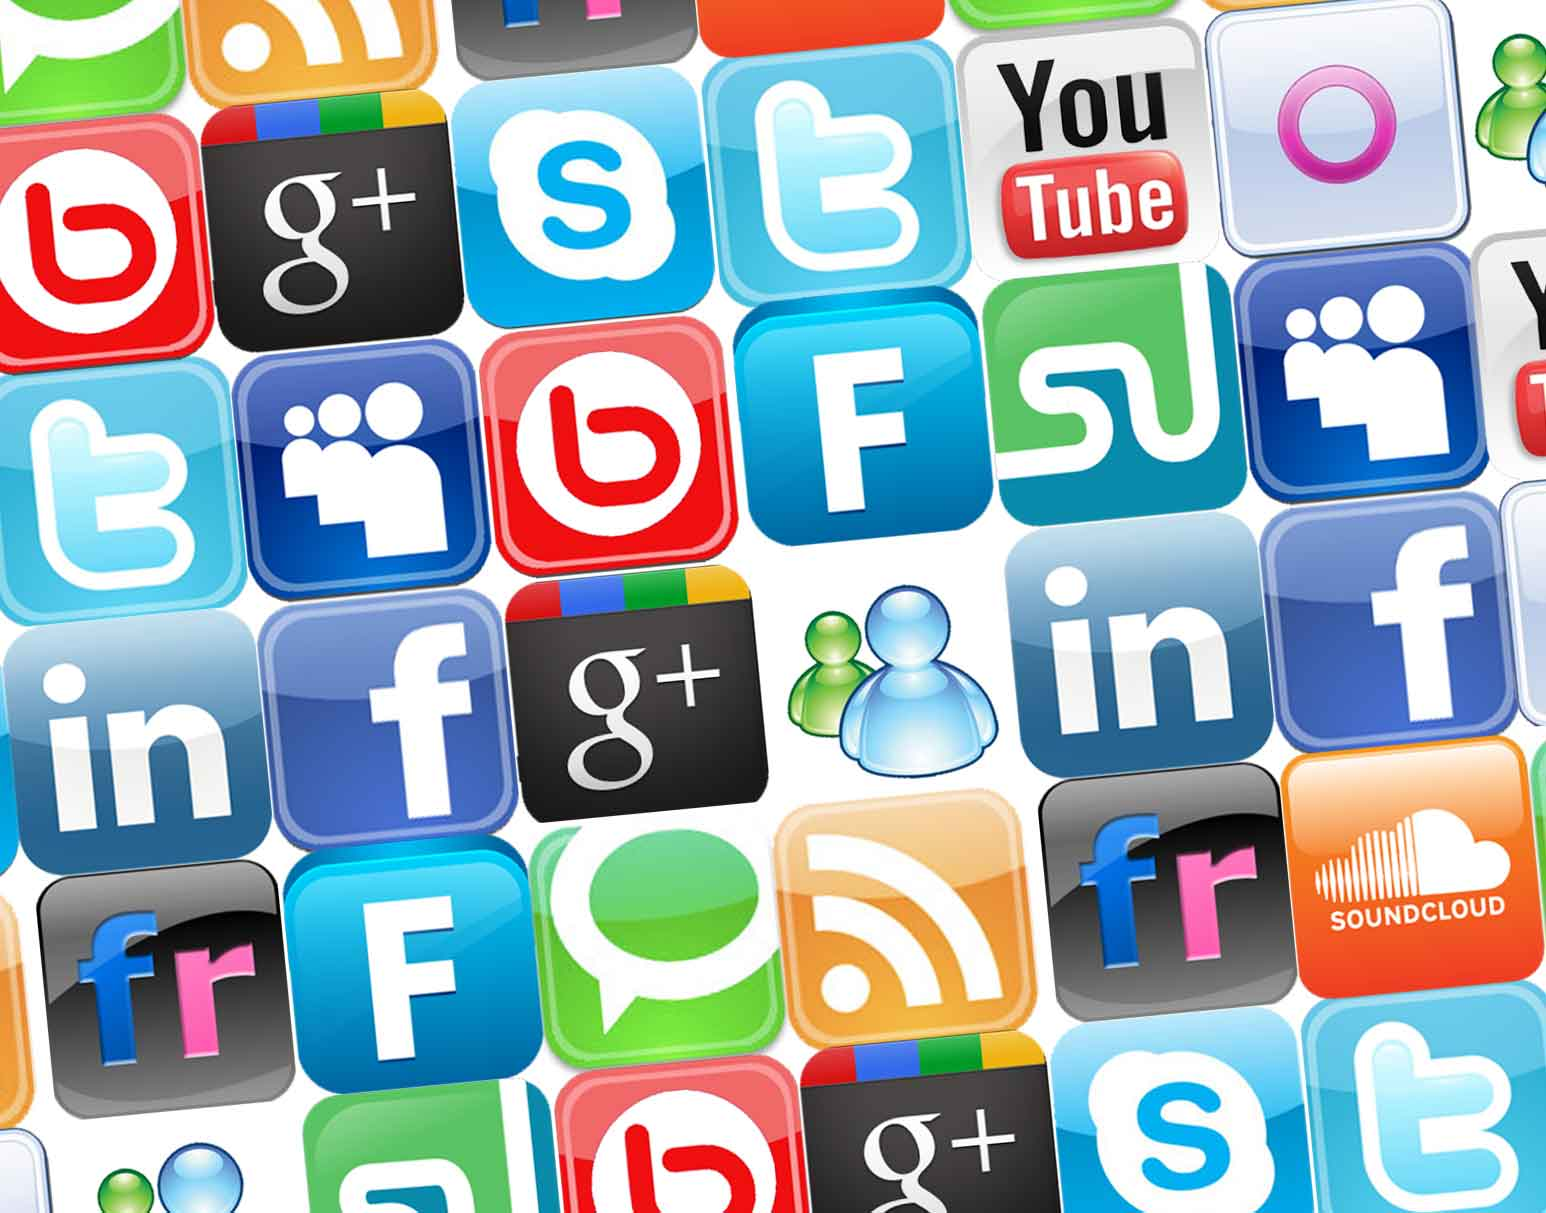 Give Your A Website Address Where You Can Post Across 20+ Social Networks At Once Free Site